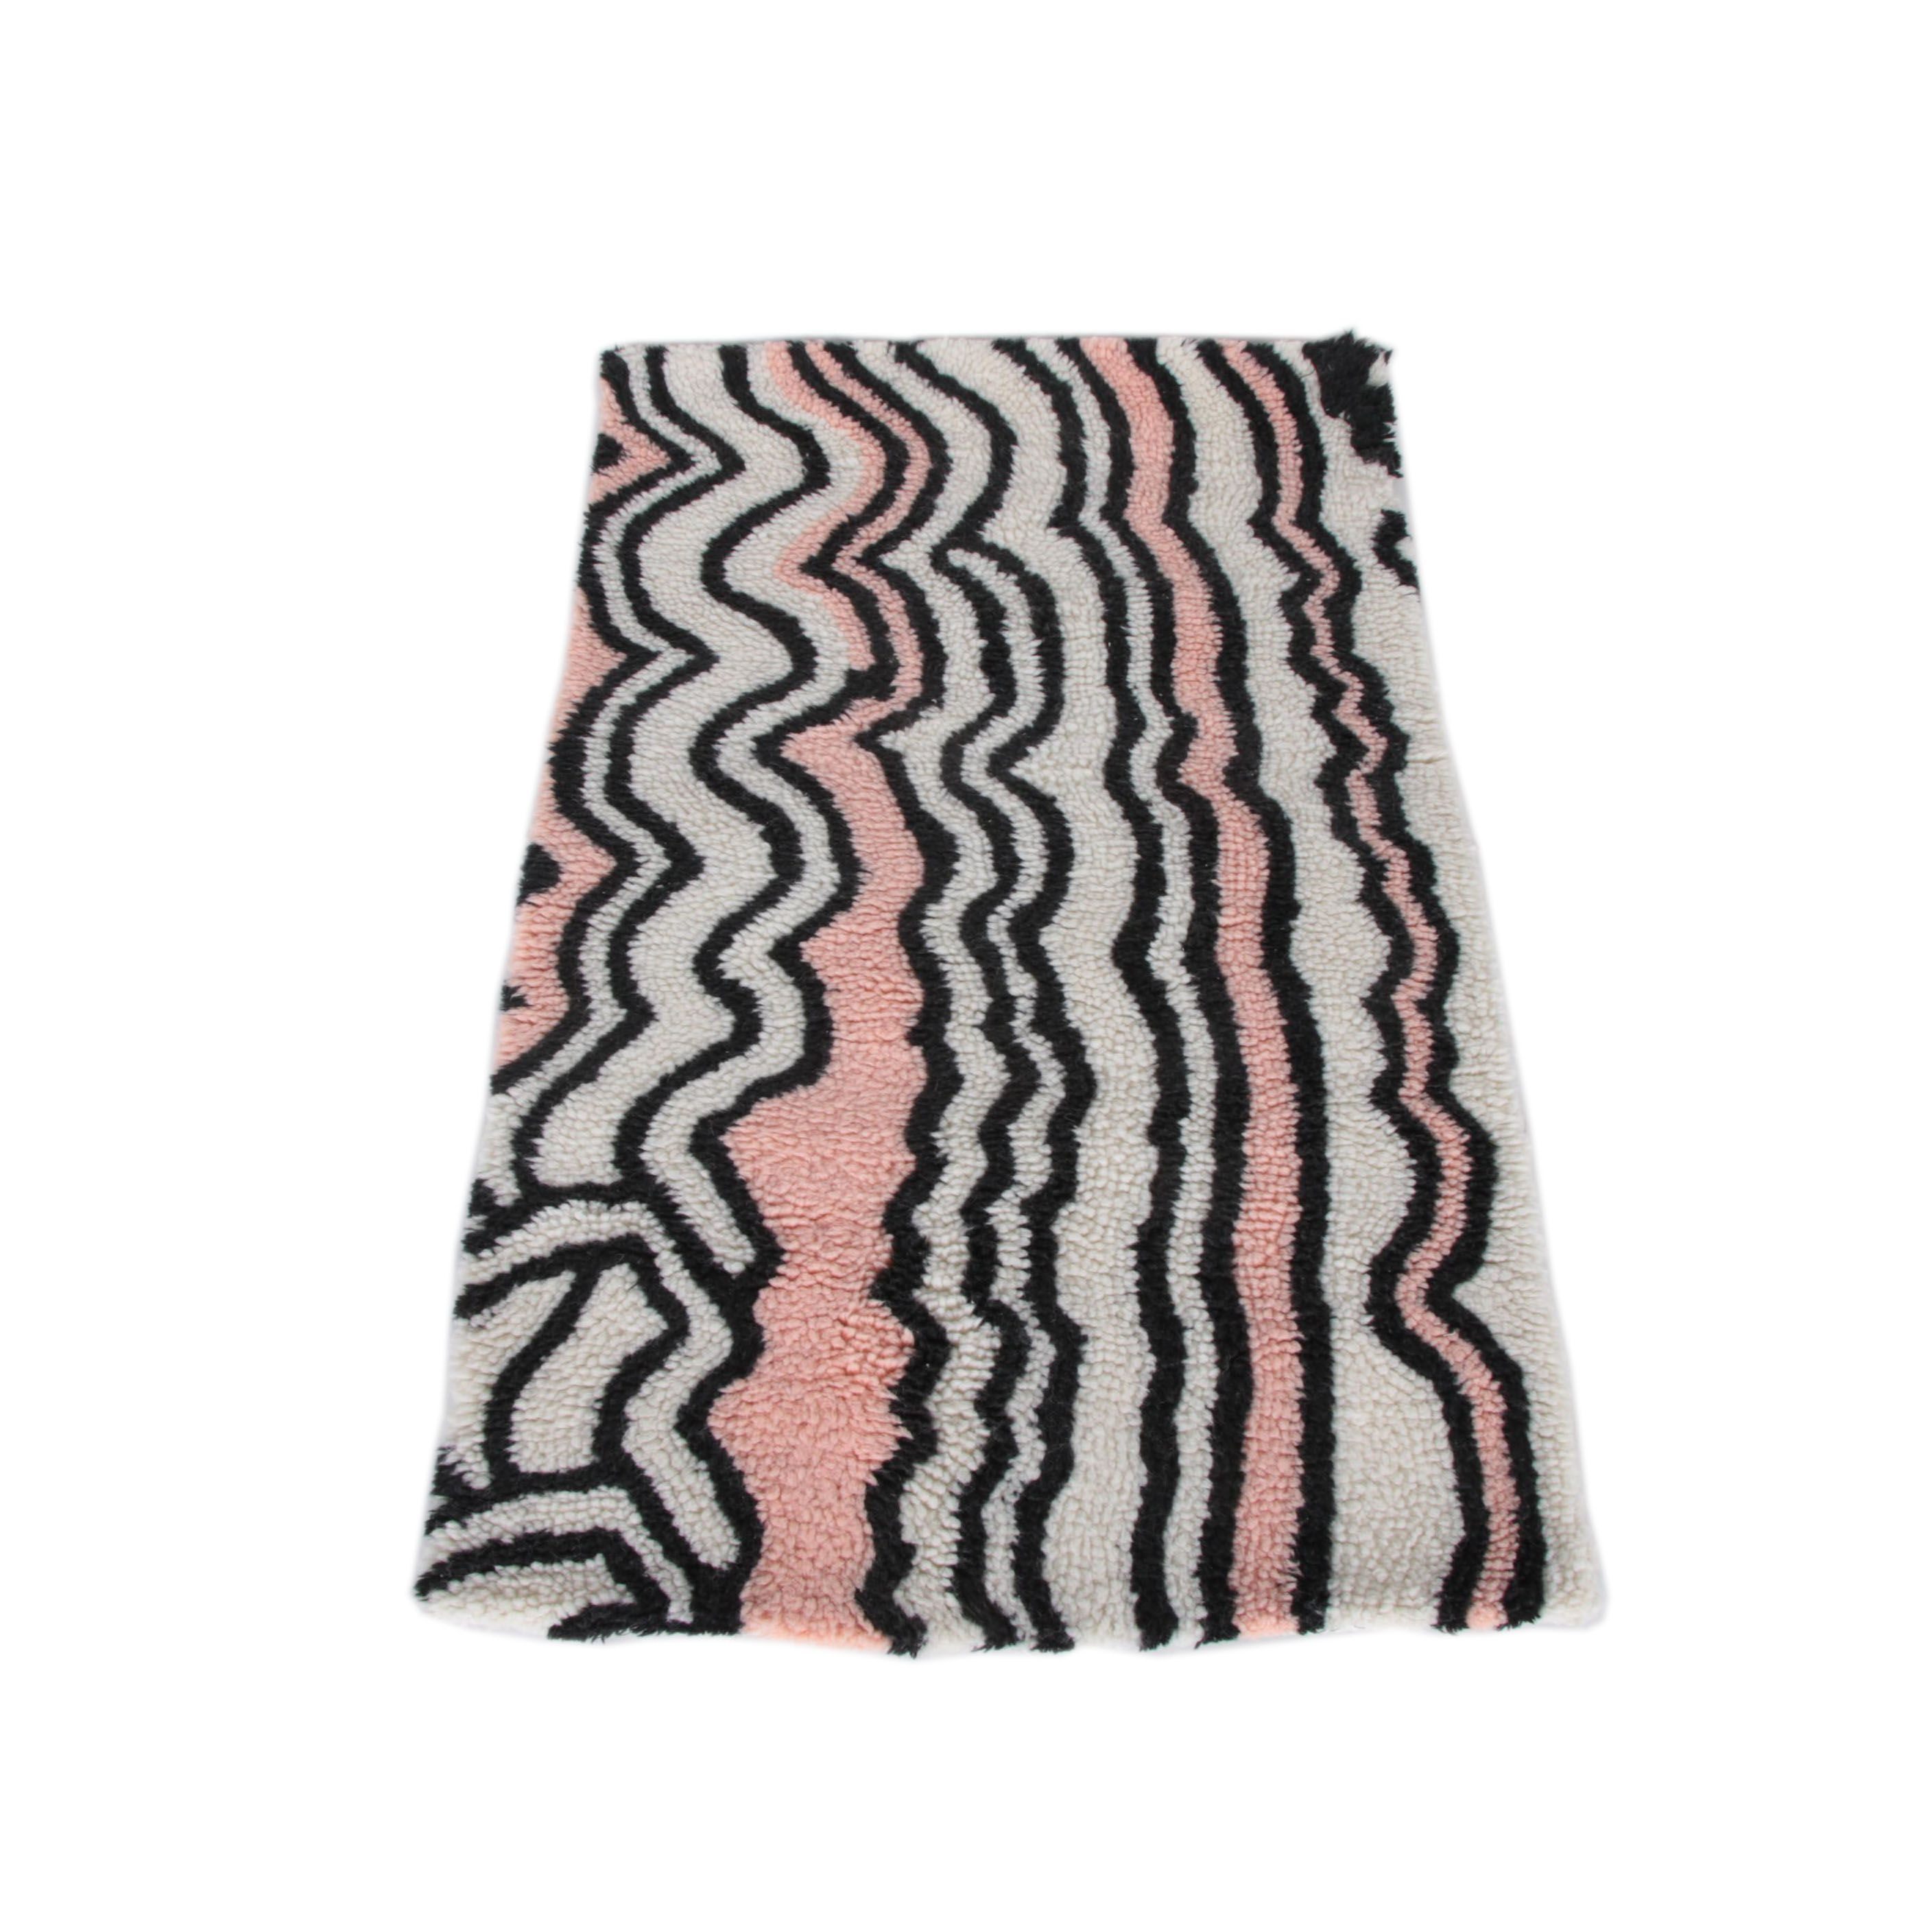 Tufted Wool Striped Accent Rug